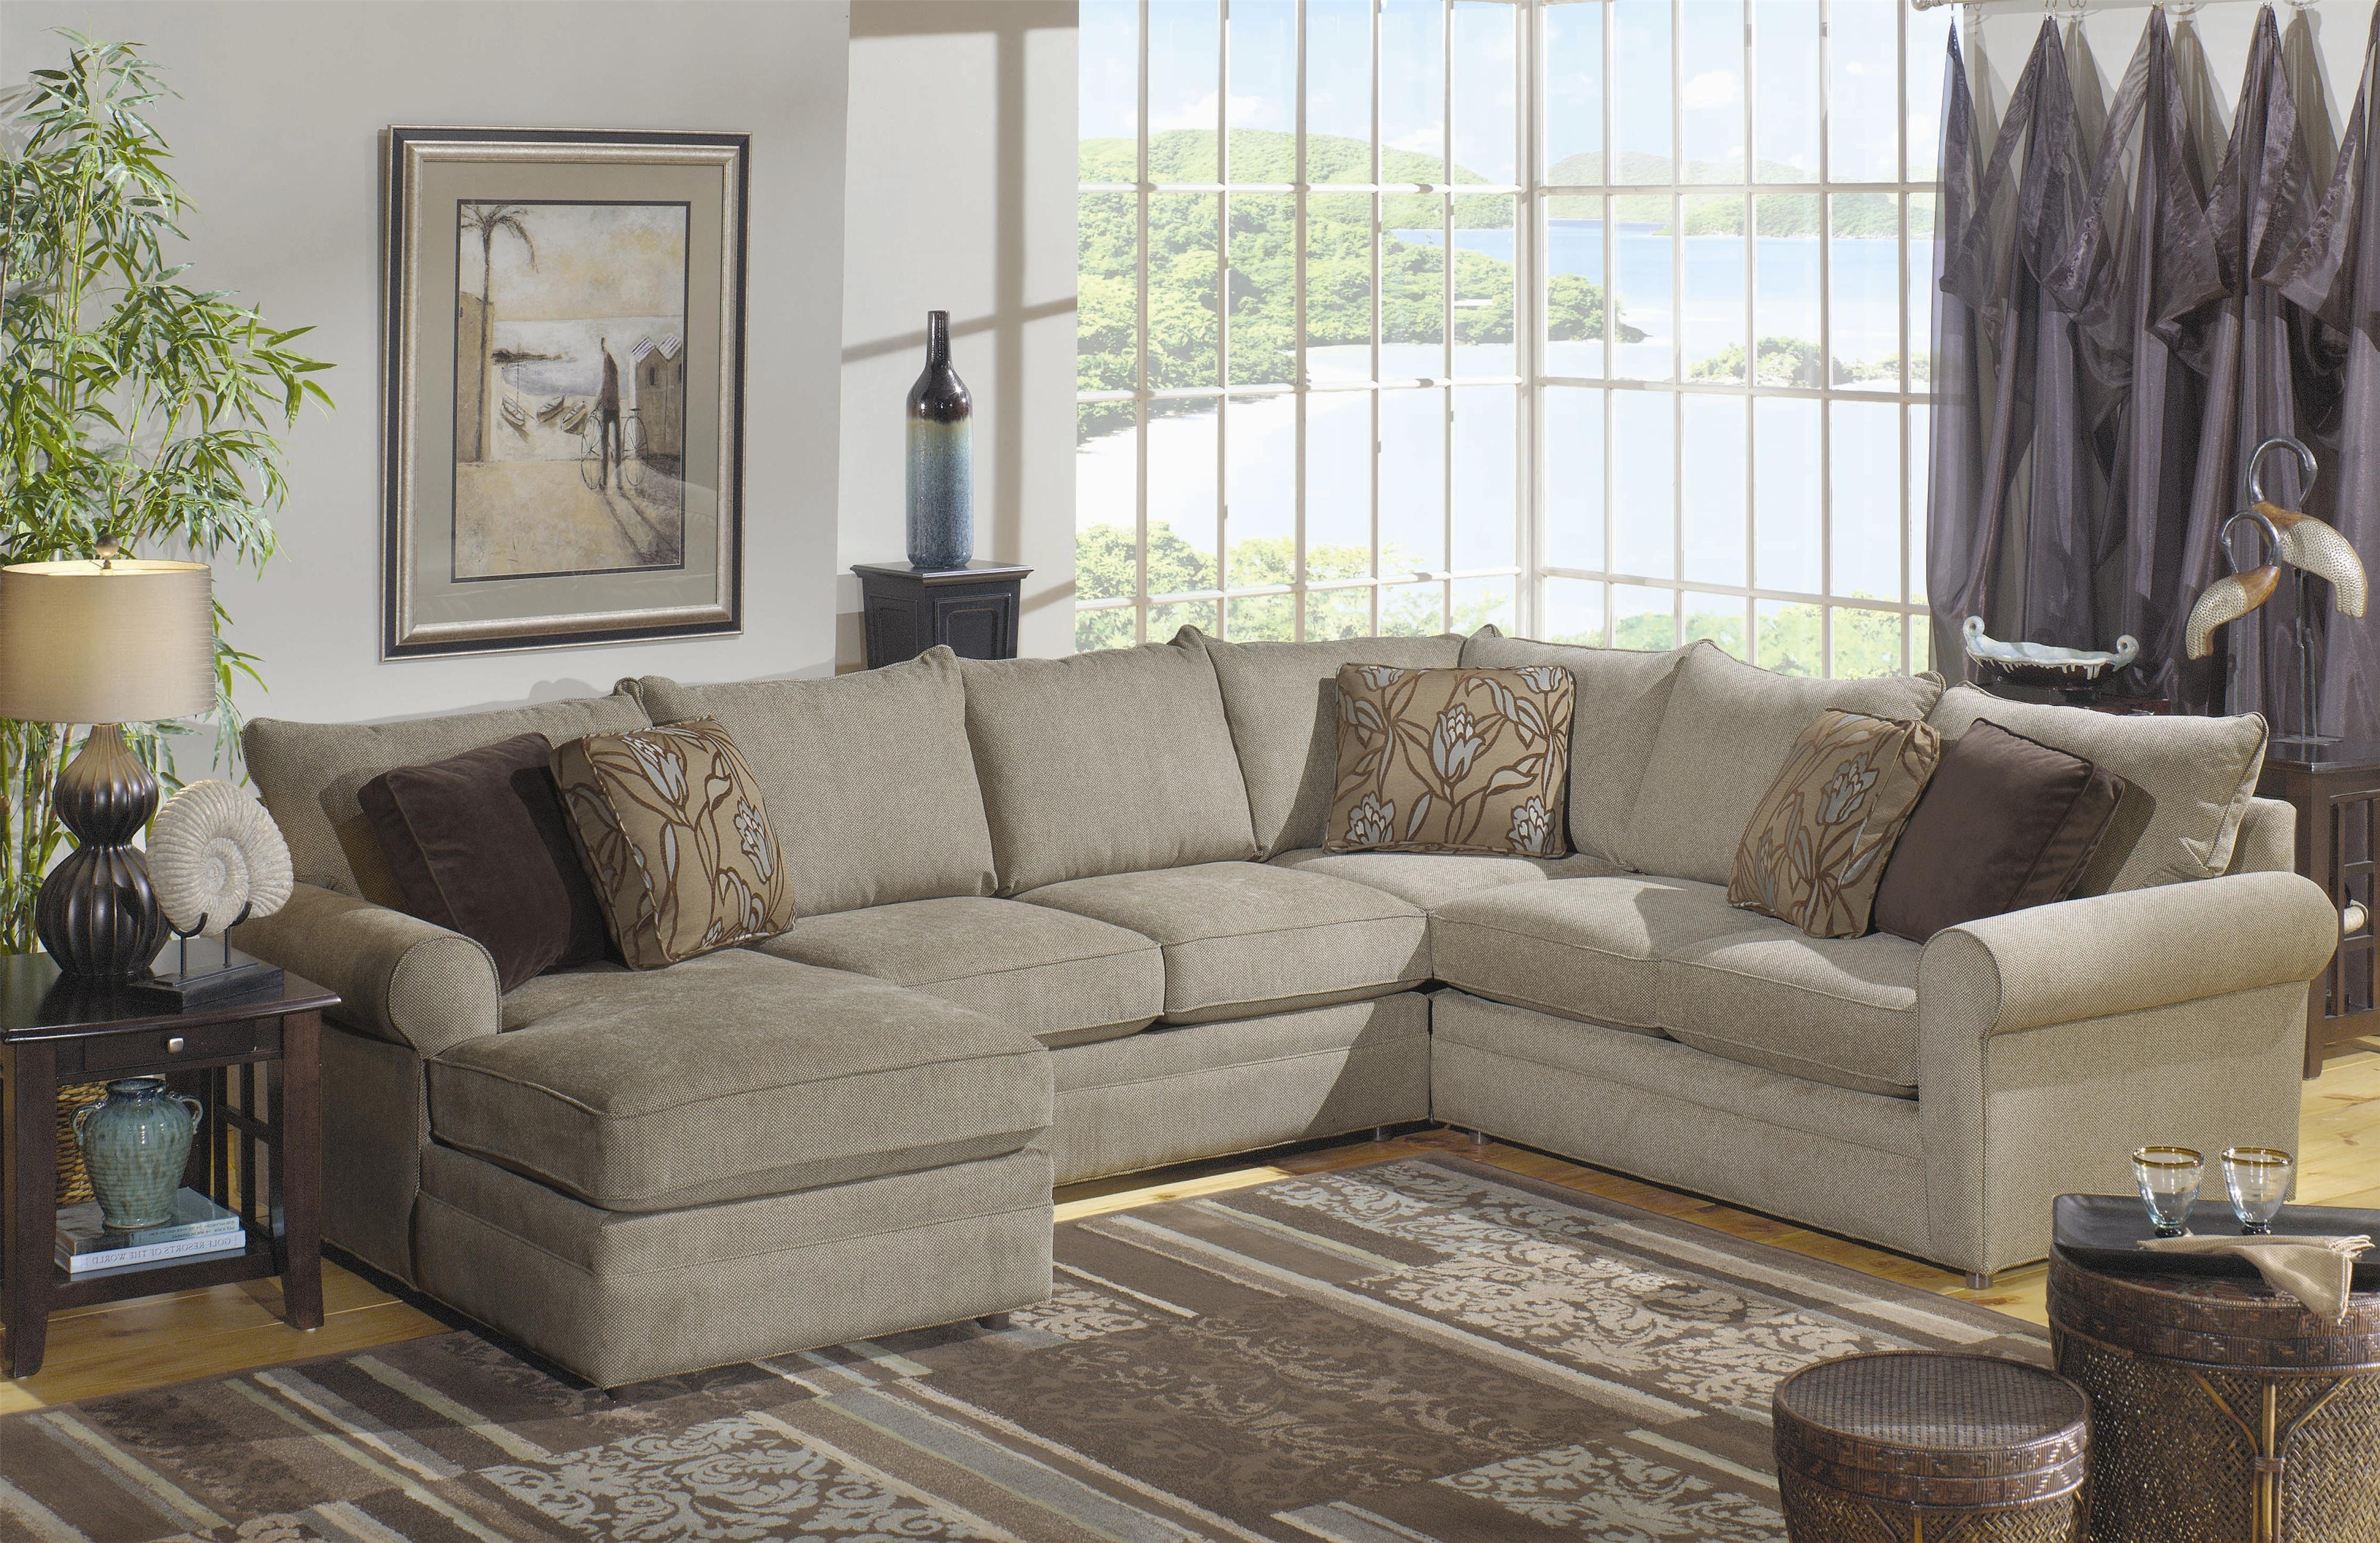 Sectional Sofa With Left Side Chaise | For The Home | Pinterest With Regard To Hickory Nc Sectional Sofas (View 3 of 10)